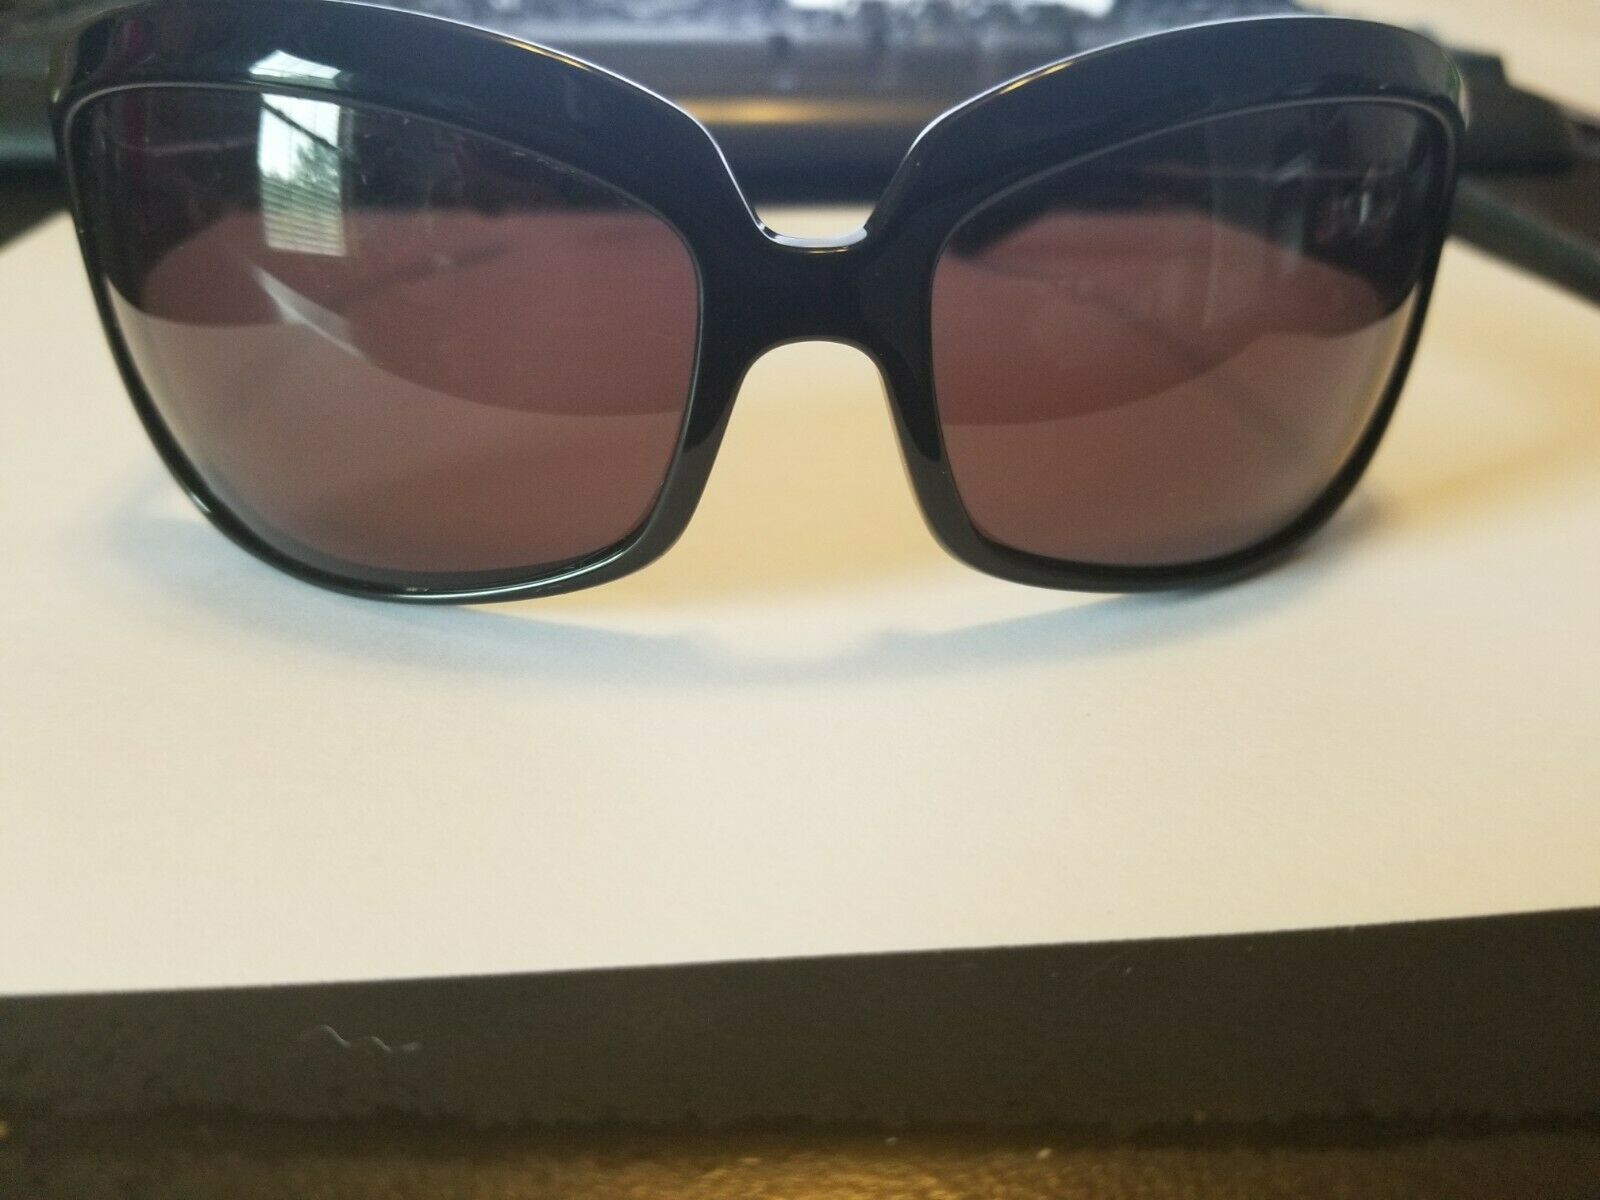 Oliver Peoples Women's Sunglasses BRAND NEW Cameo BK 66 16-115 ..PERFECT